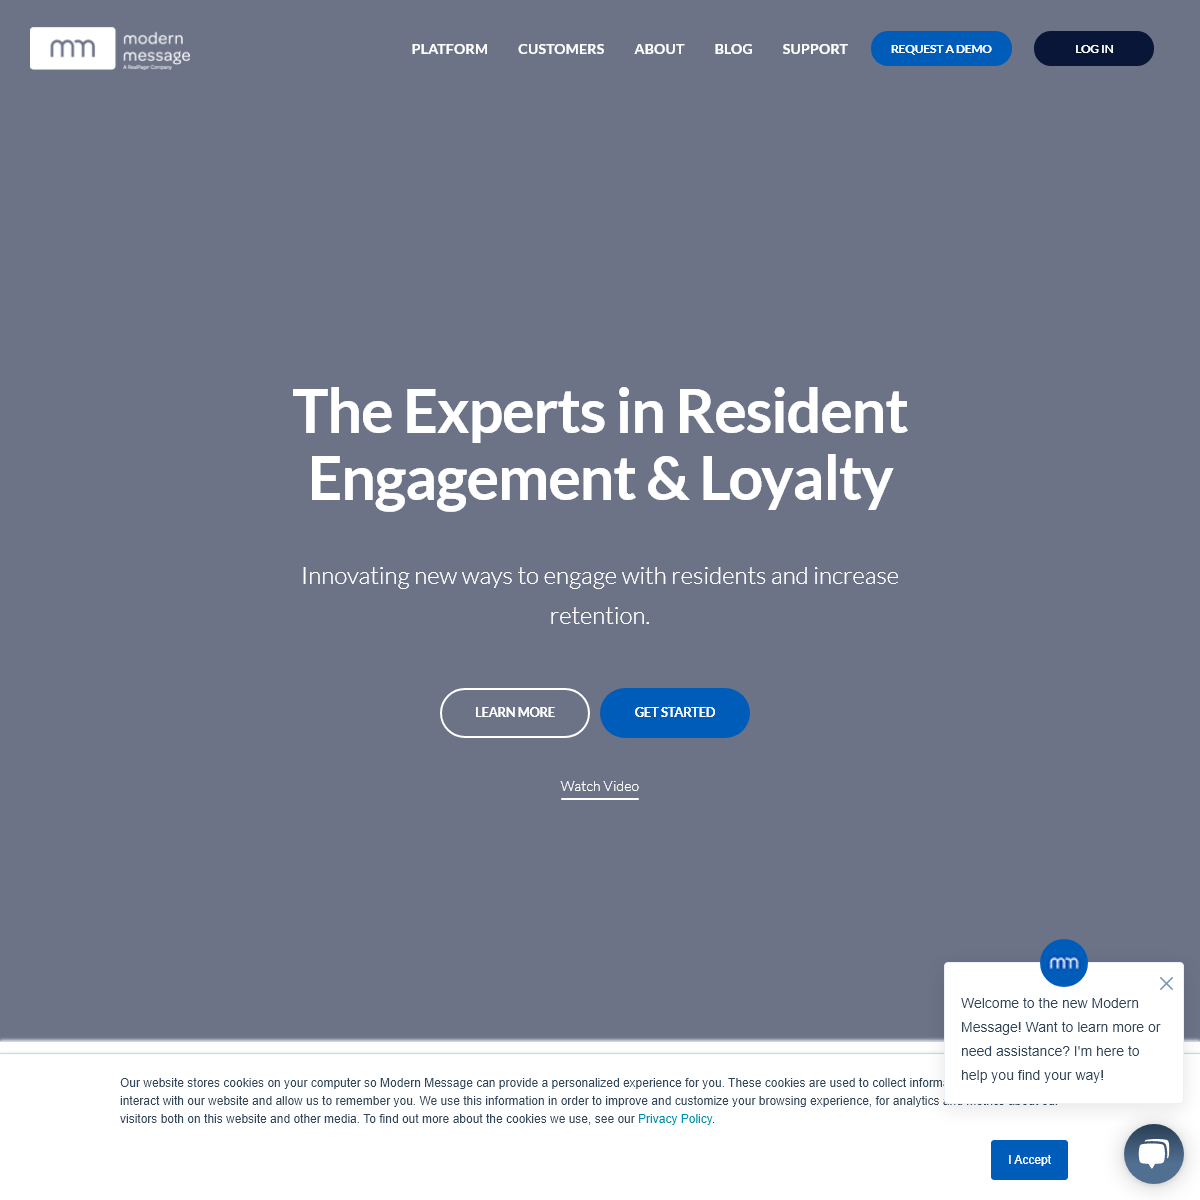 The Experts in Resident Engagement & Loyalty - Modern Message